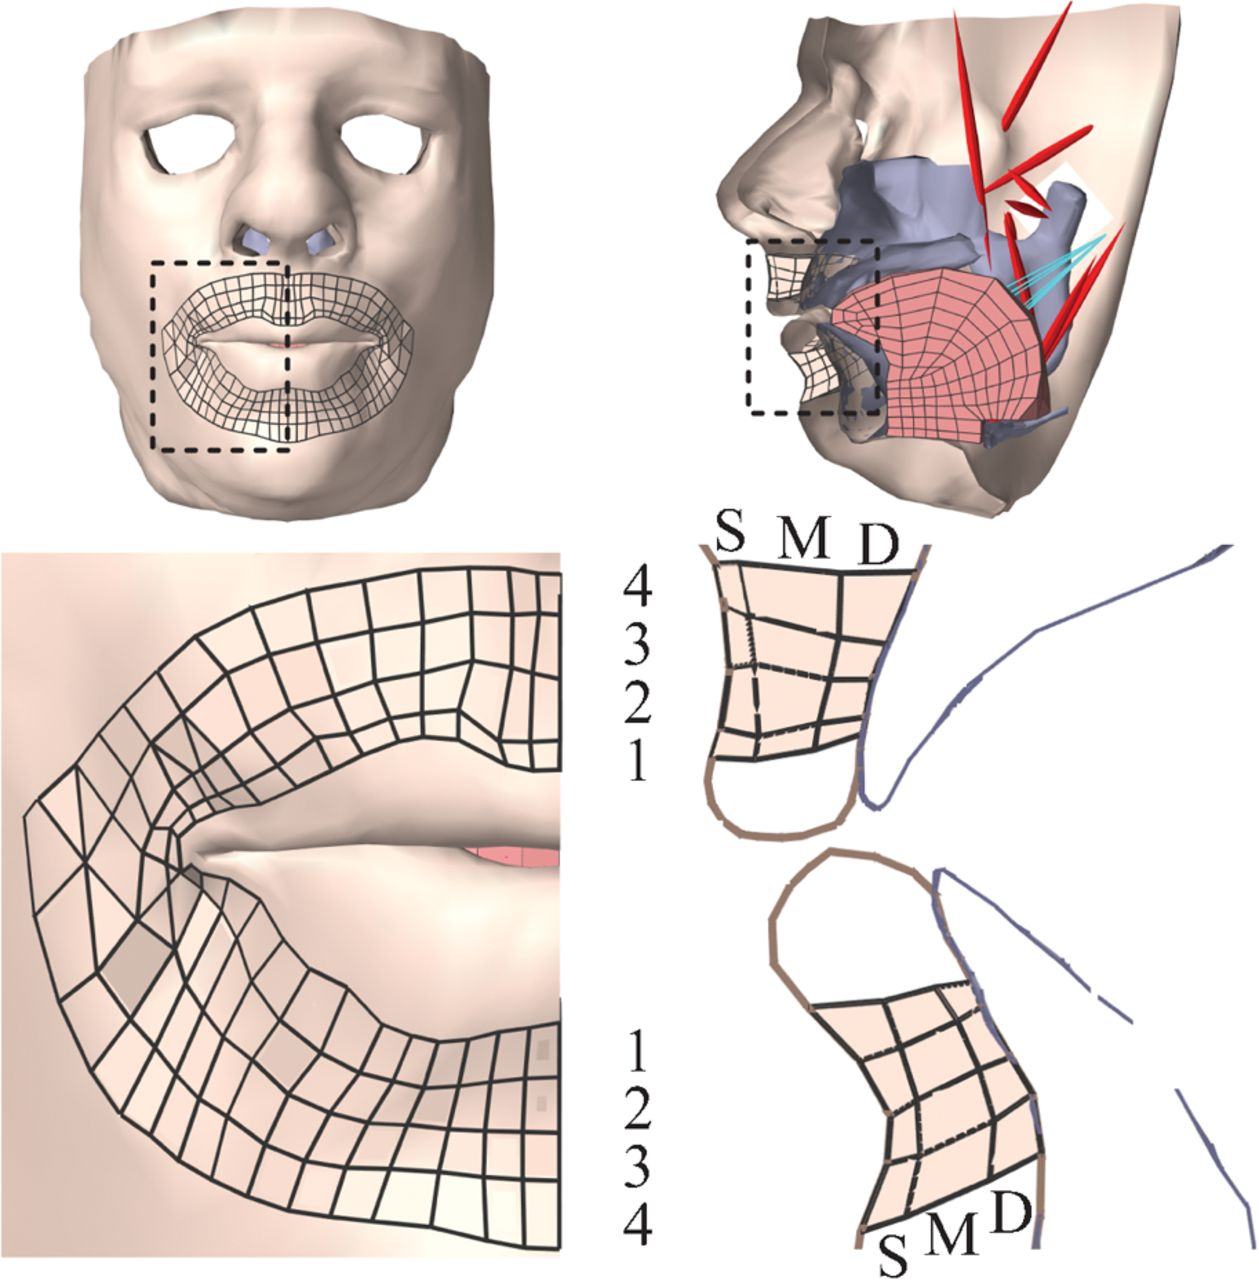 A Biomechanical Modeling Study Of The Effects Of The Orbicularis